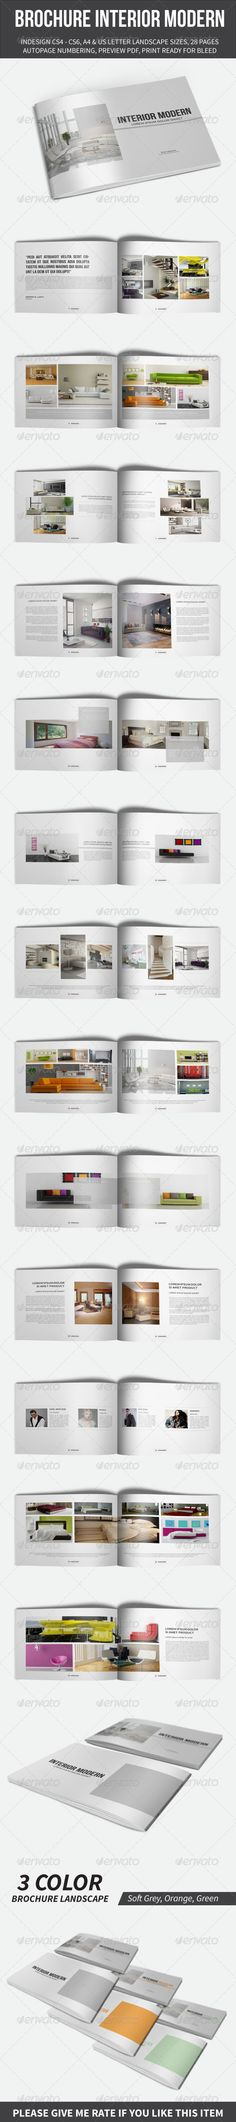 Brochure Interior Modern Template